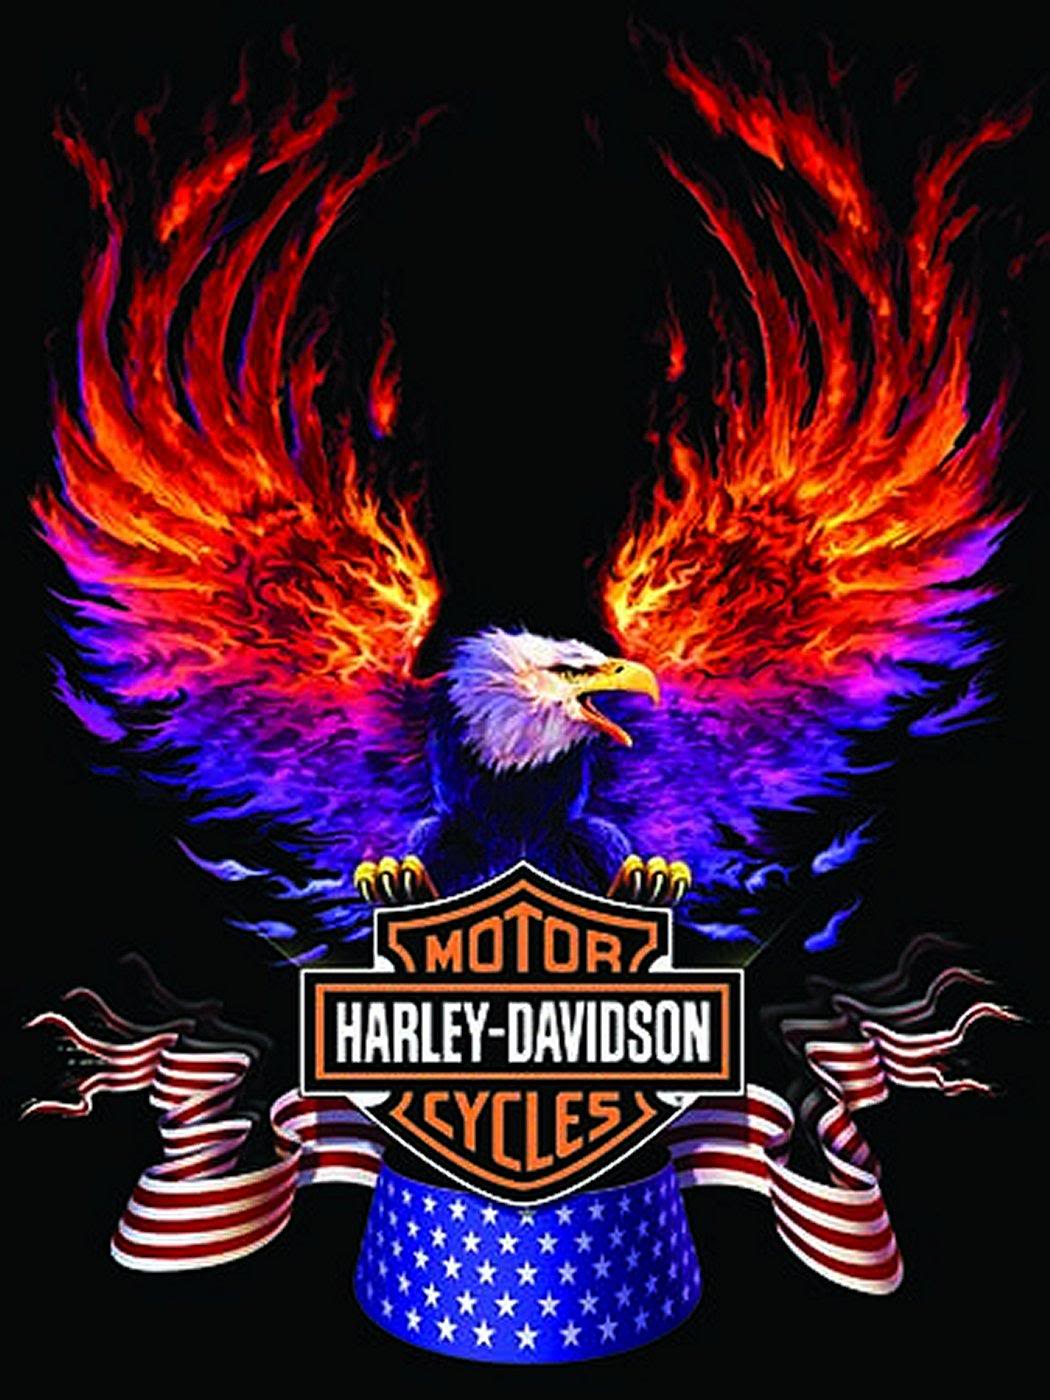 newest harley davidson logo wallpapers - photo #27